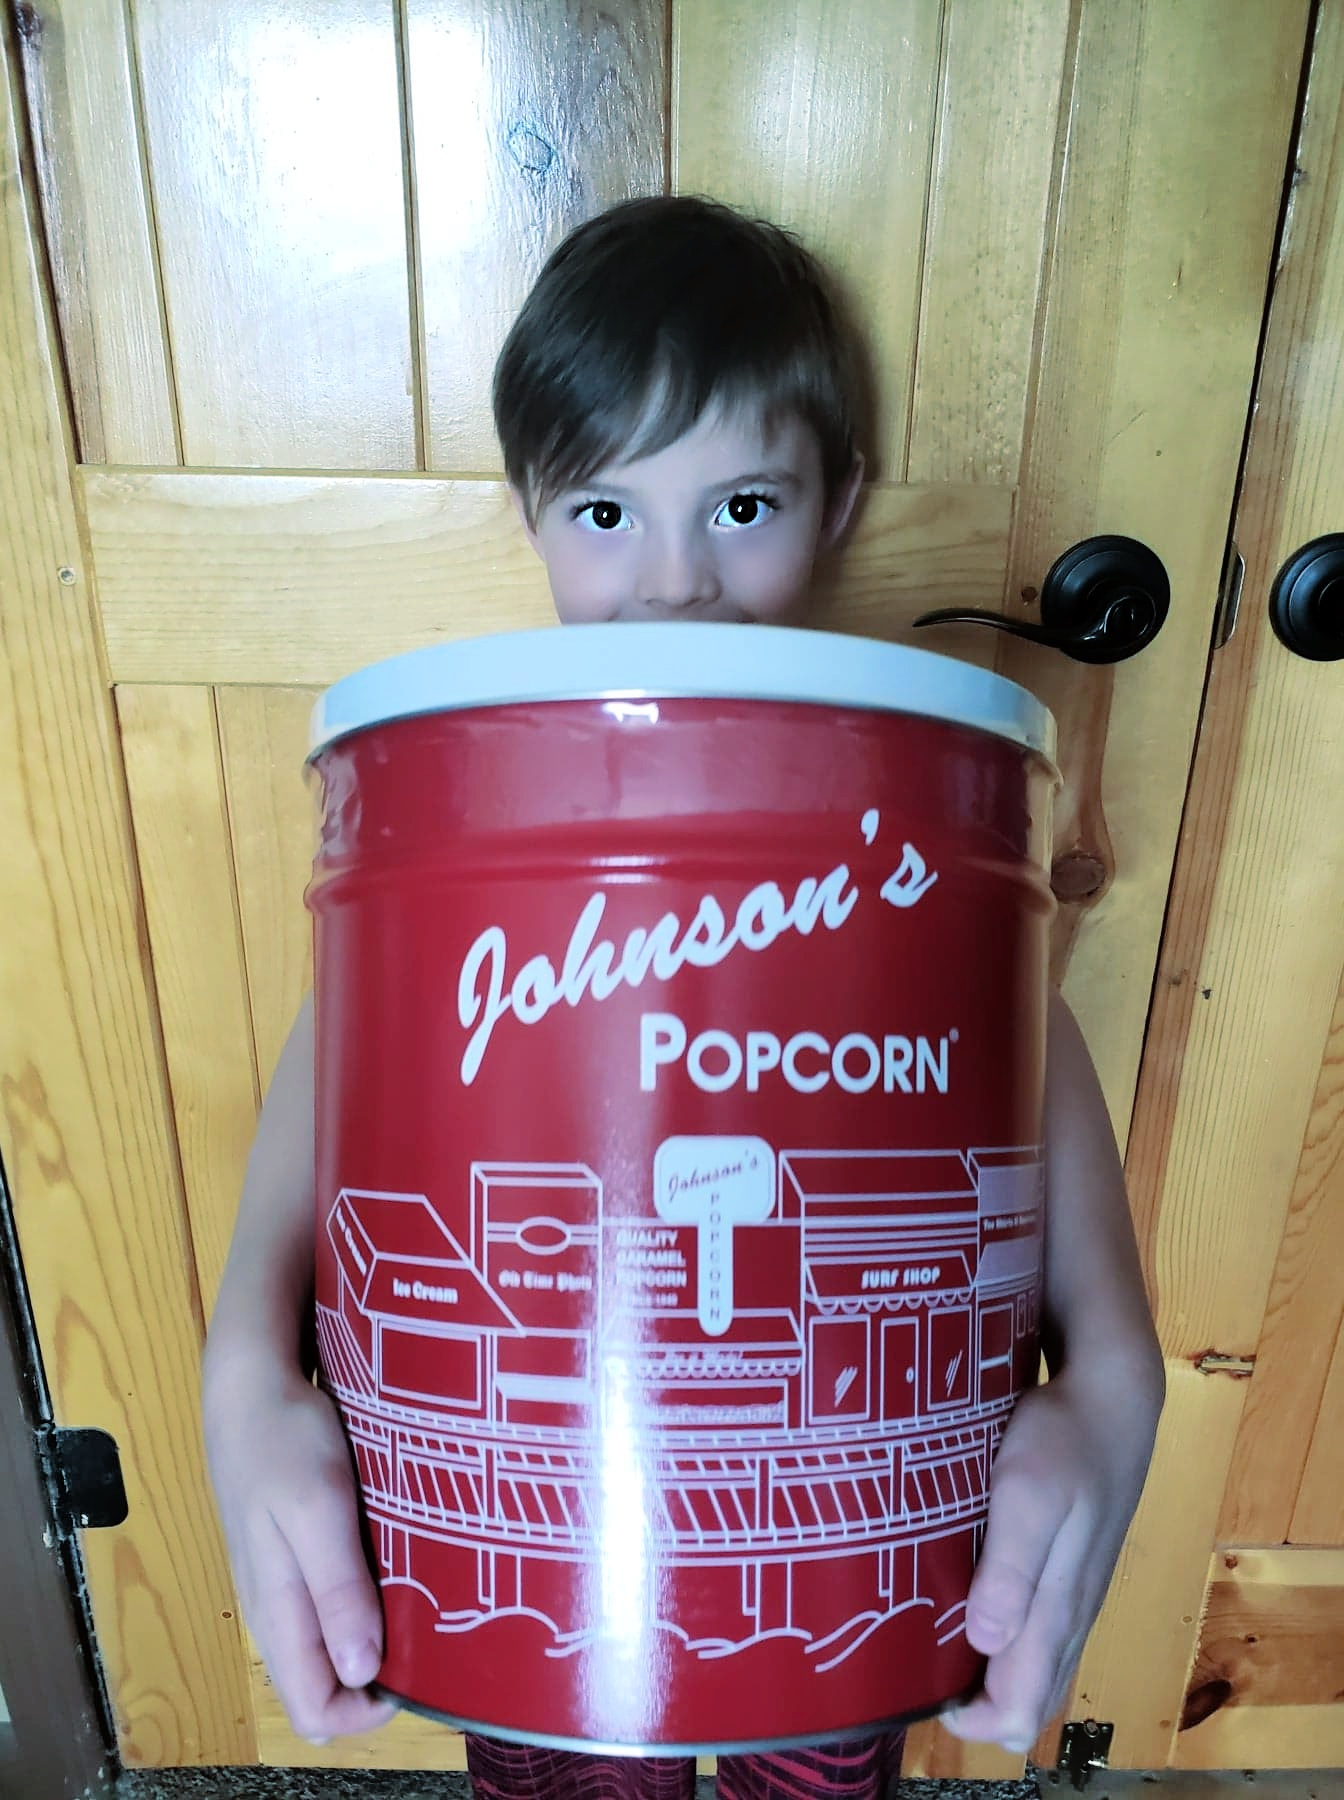 Johnson's Popcorn Is Delicious